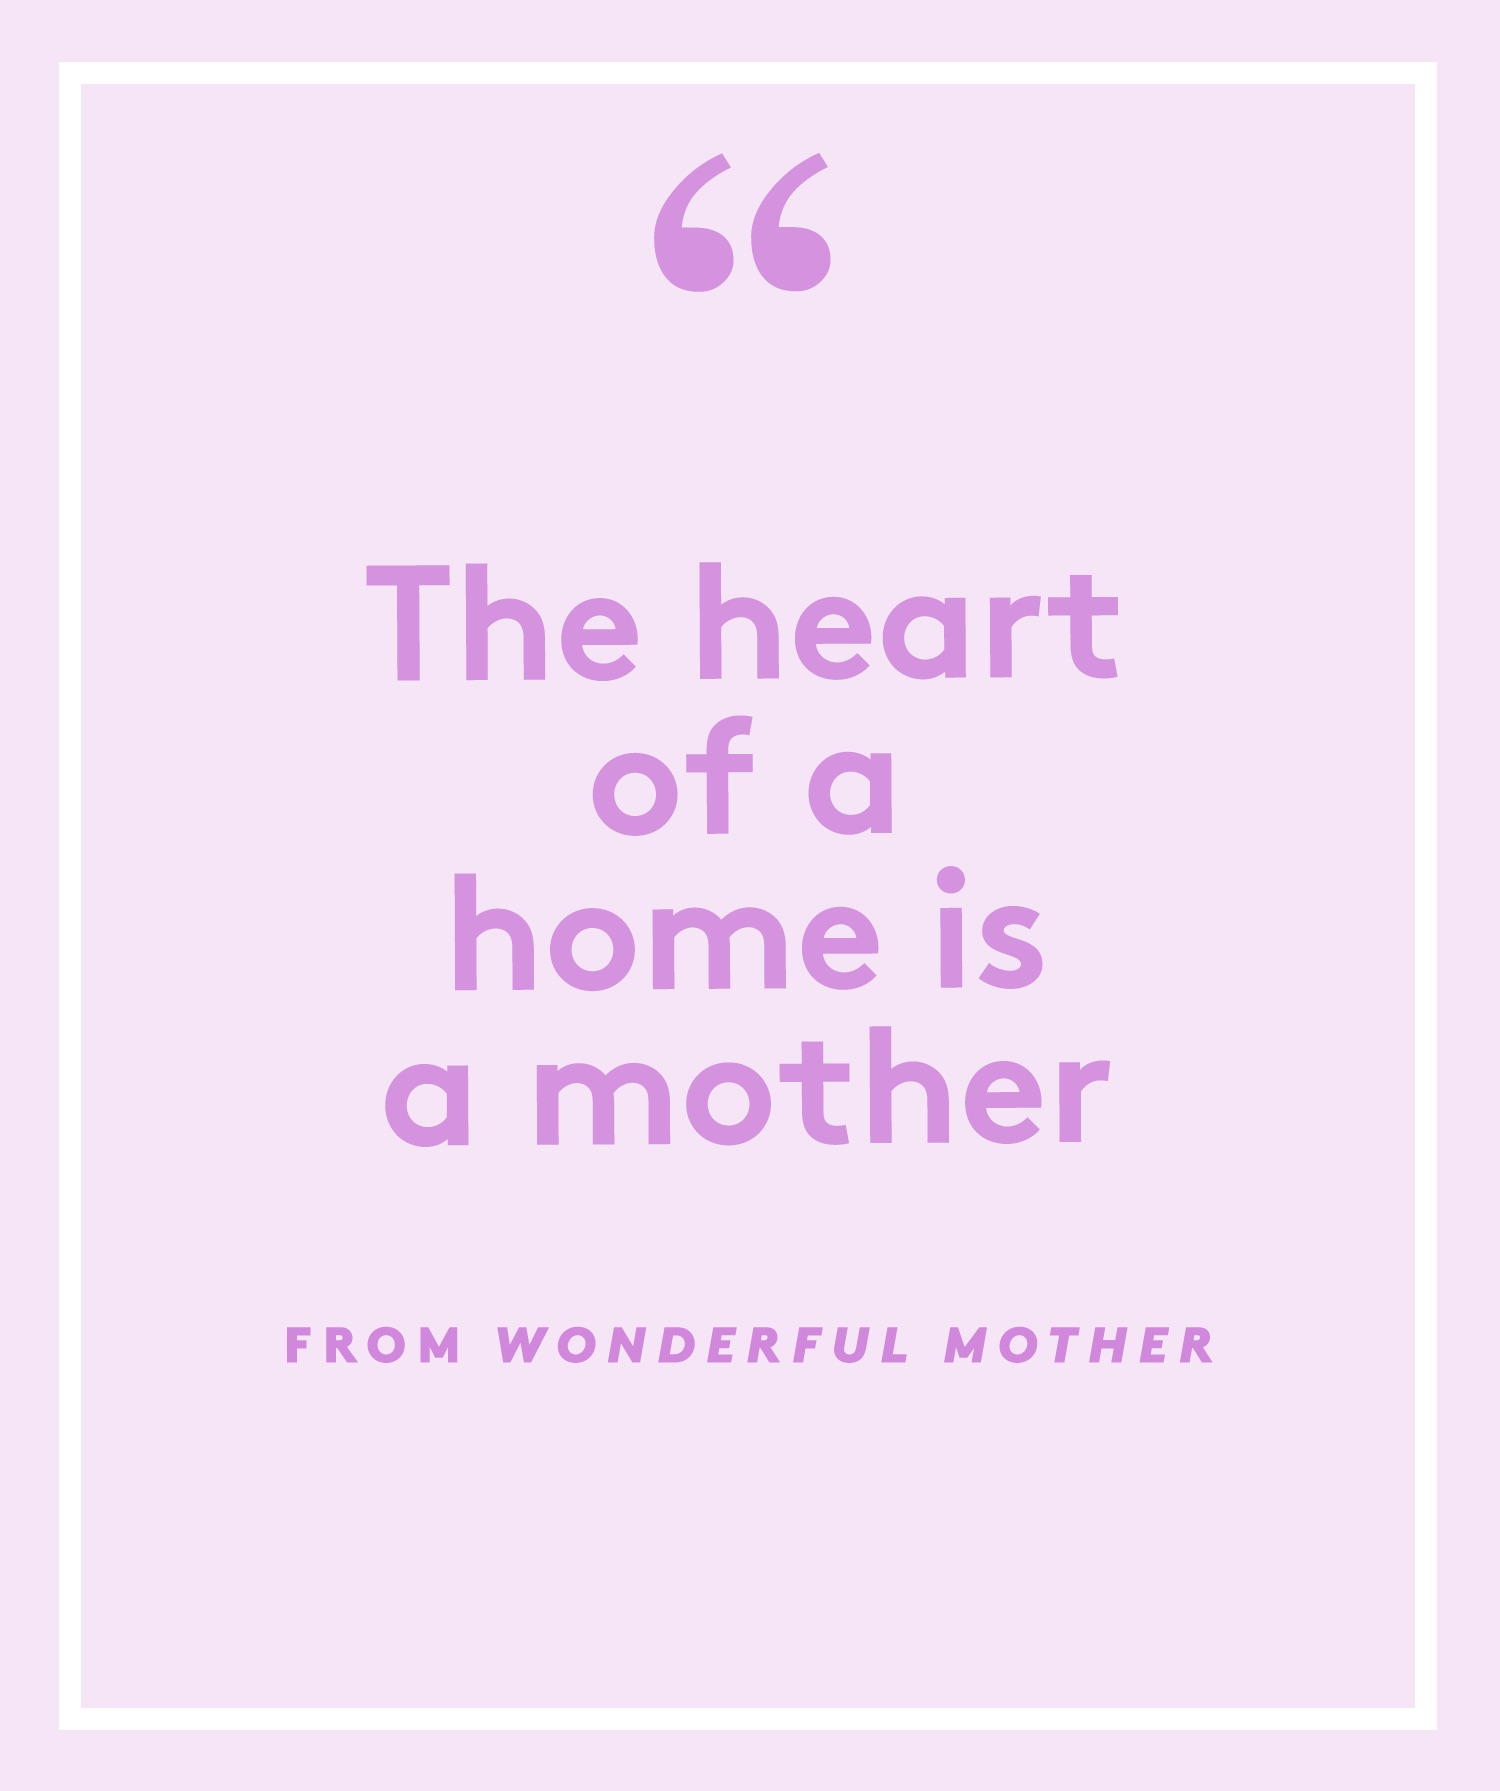 Short Poem on Mother: Wonderful Mother